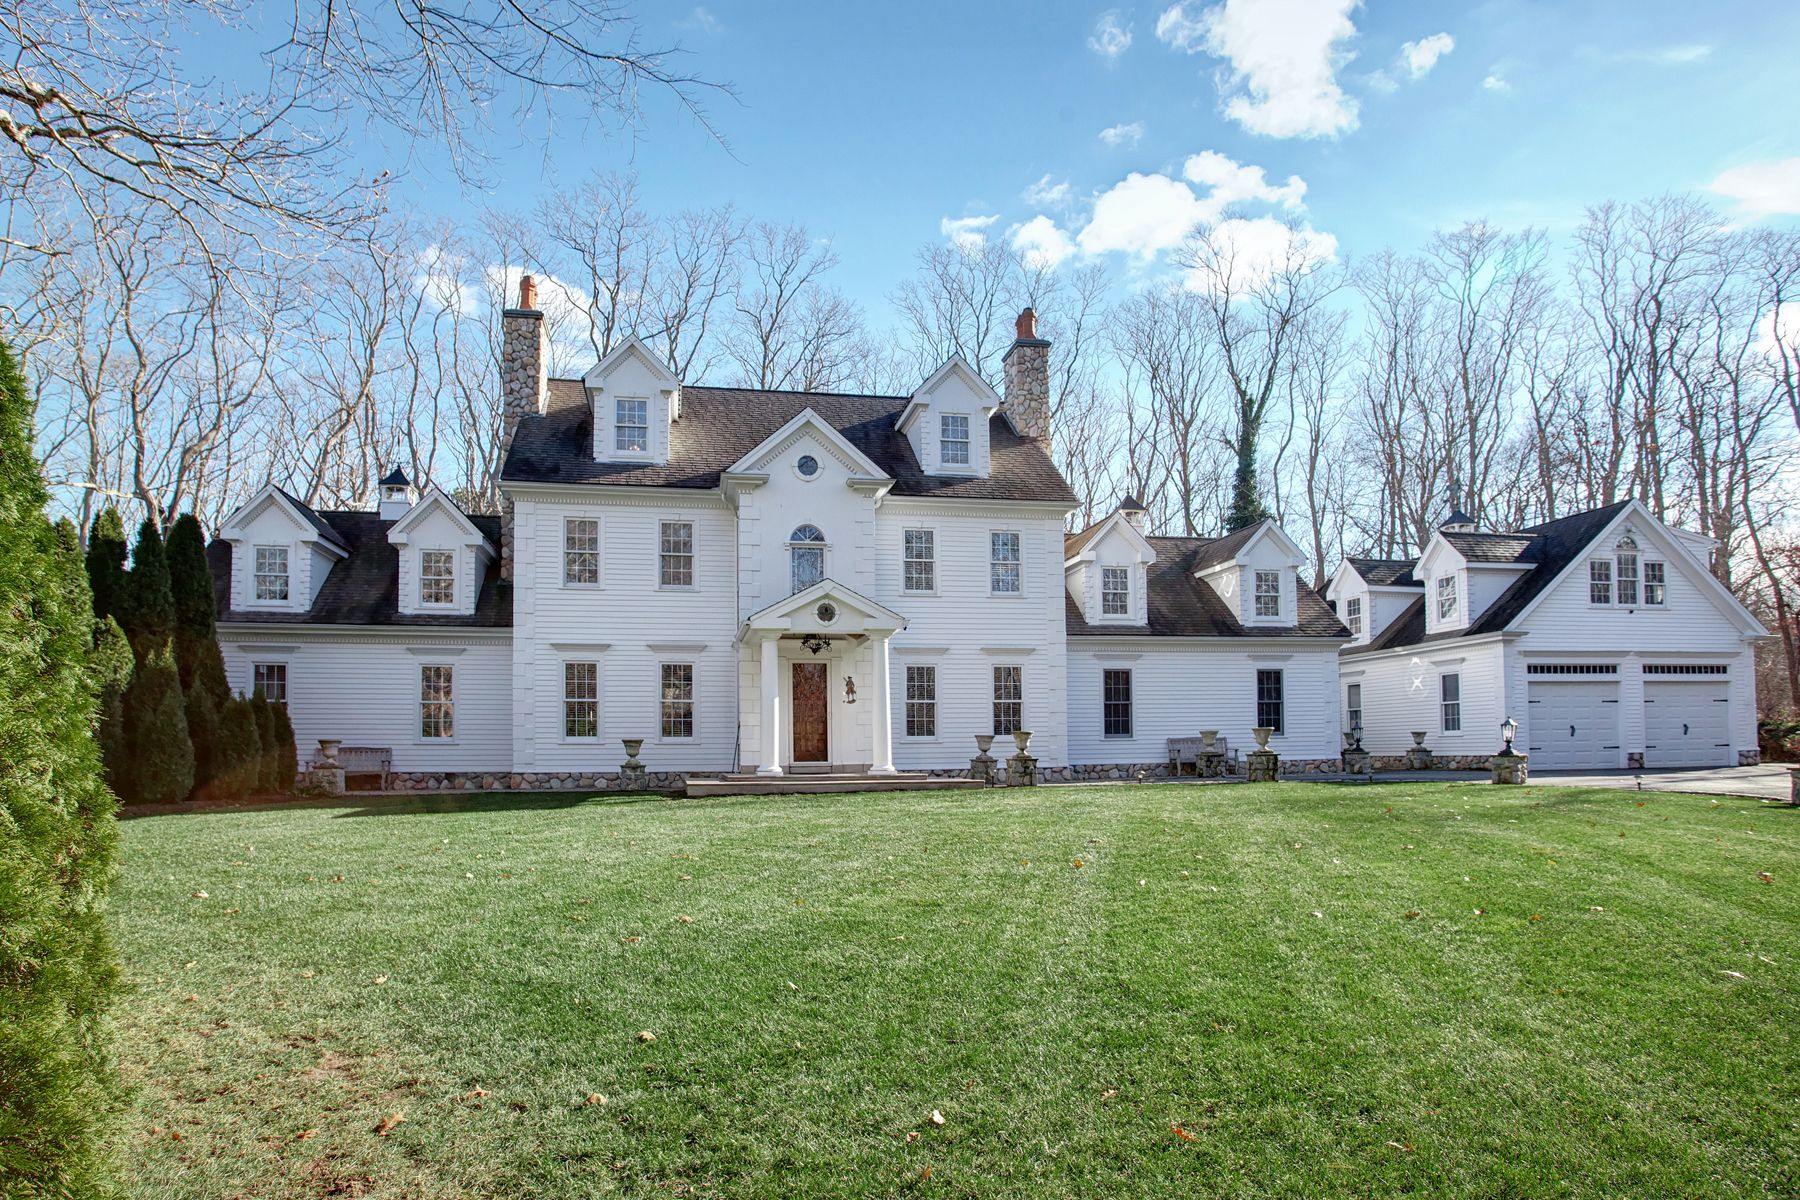 Single Family Home for Active at East Sandwich Estate 402 Quaker Meetinghouse Road East Sandwich, Massachusetts 02537 United States